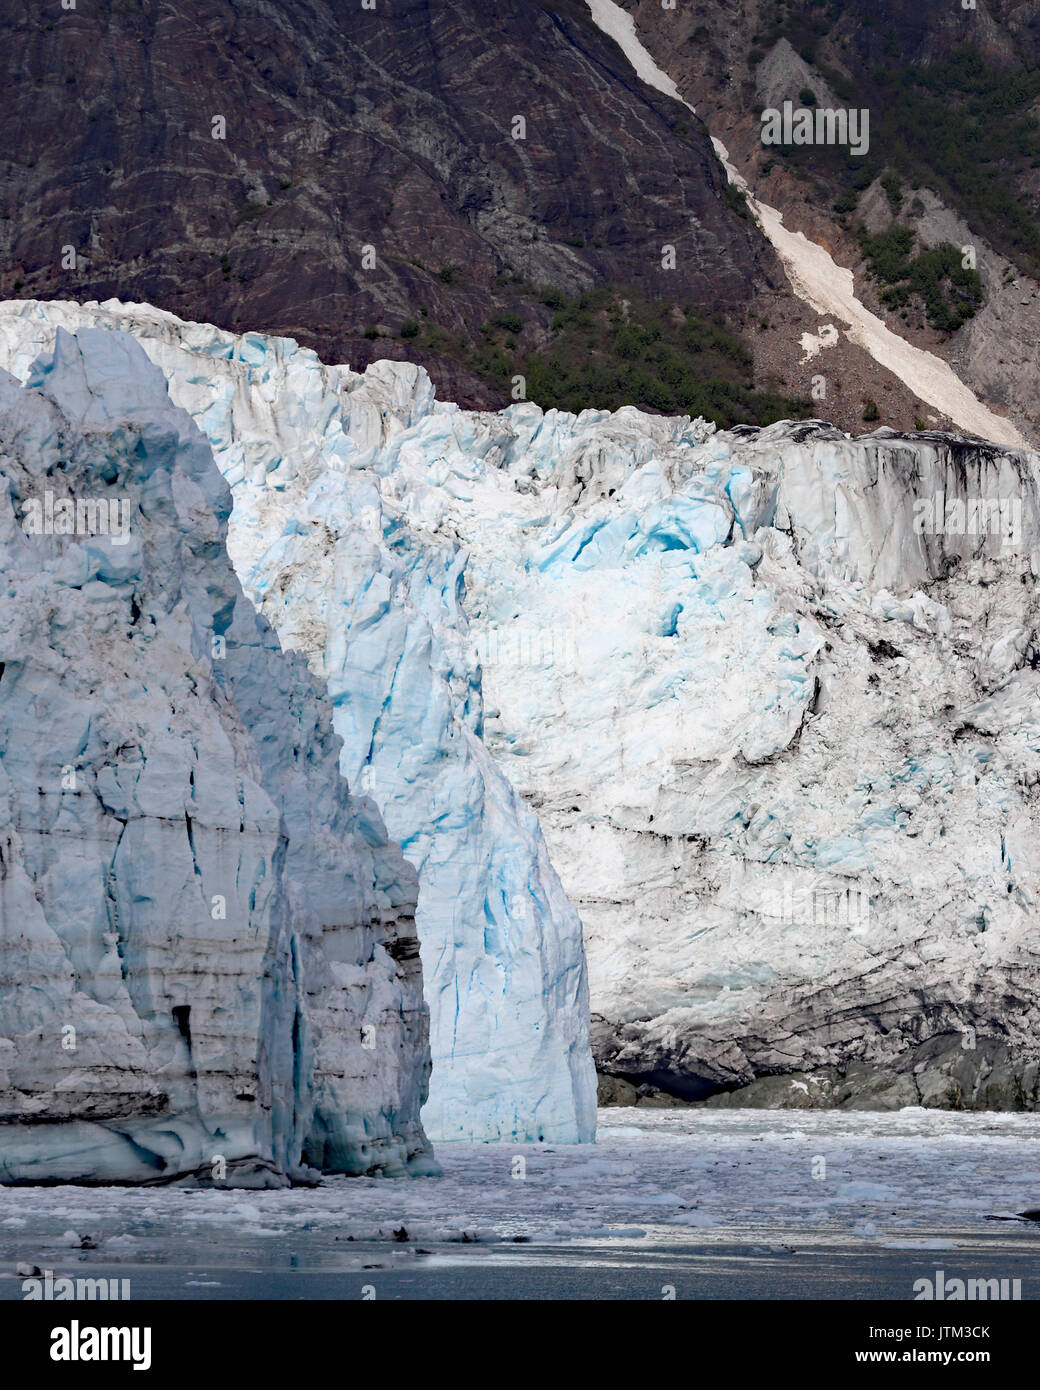 The Margerie glacier grows at a pace of 30 feet per year and is one of the few advancing glaciers in Alaska - Stock Image